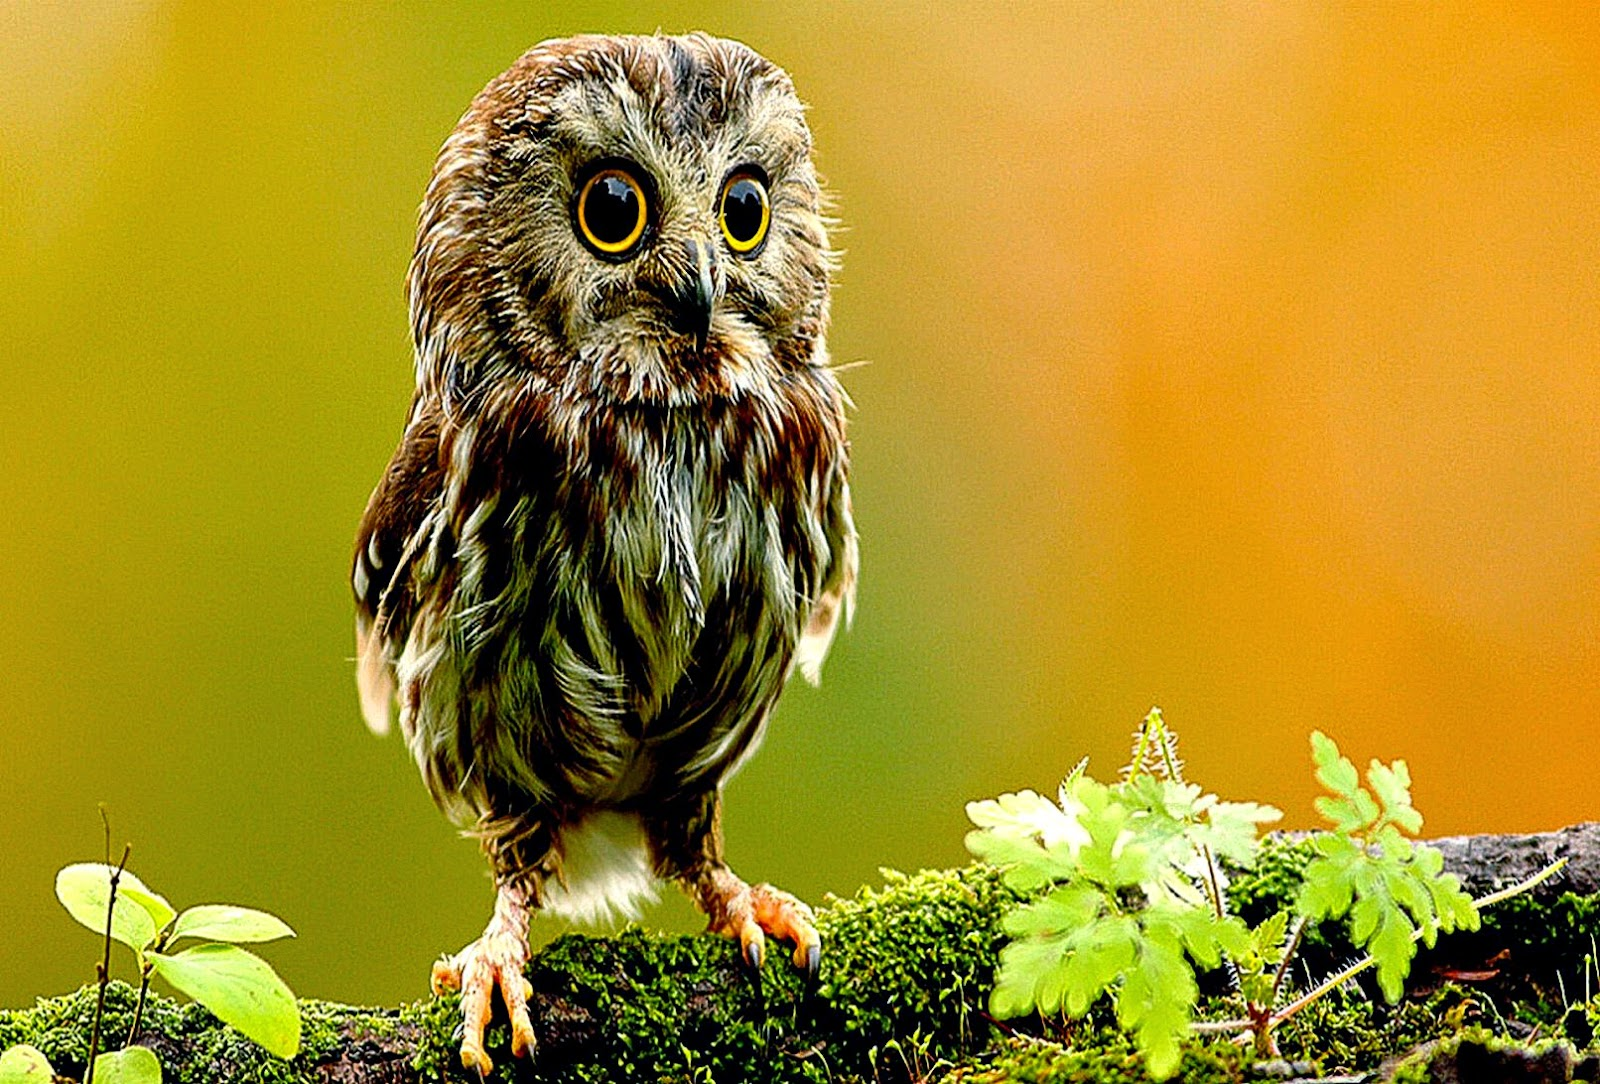 Amazing   Wallpaper Home Screen Owl - owl-wallpapers-and-backgrounds-w8themes-windows-8-themesnews  Pictures_74169.jpg